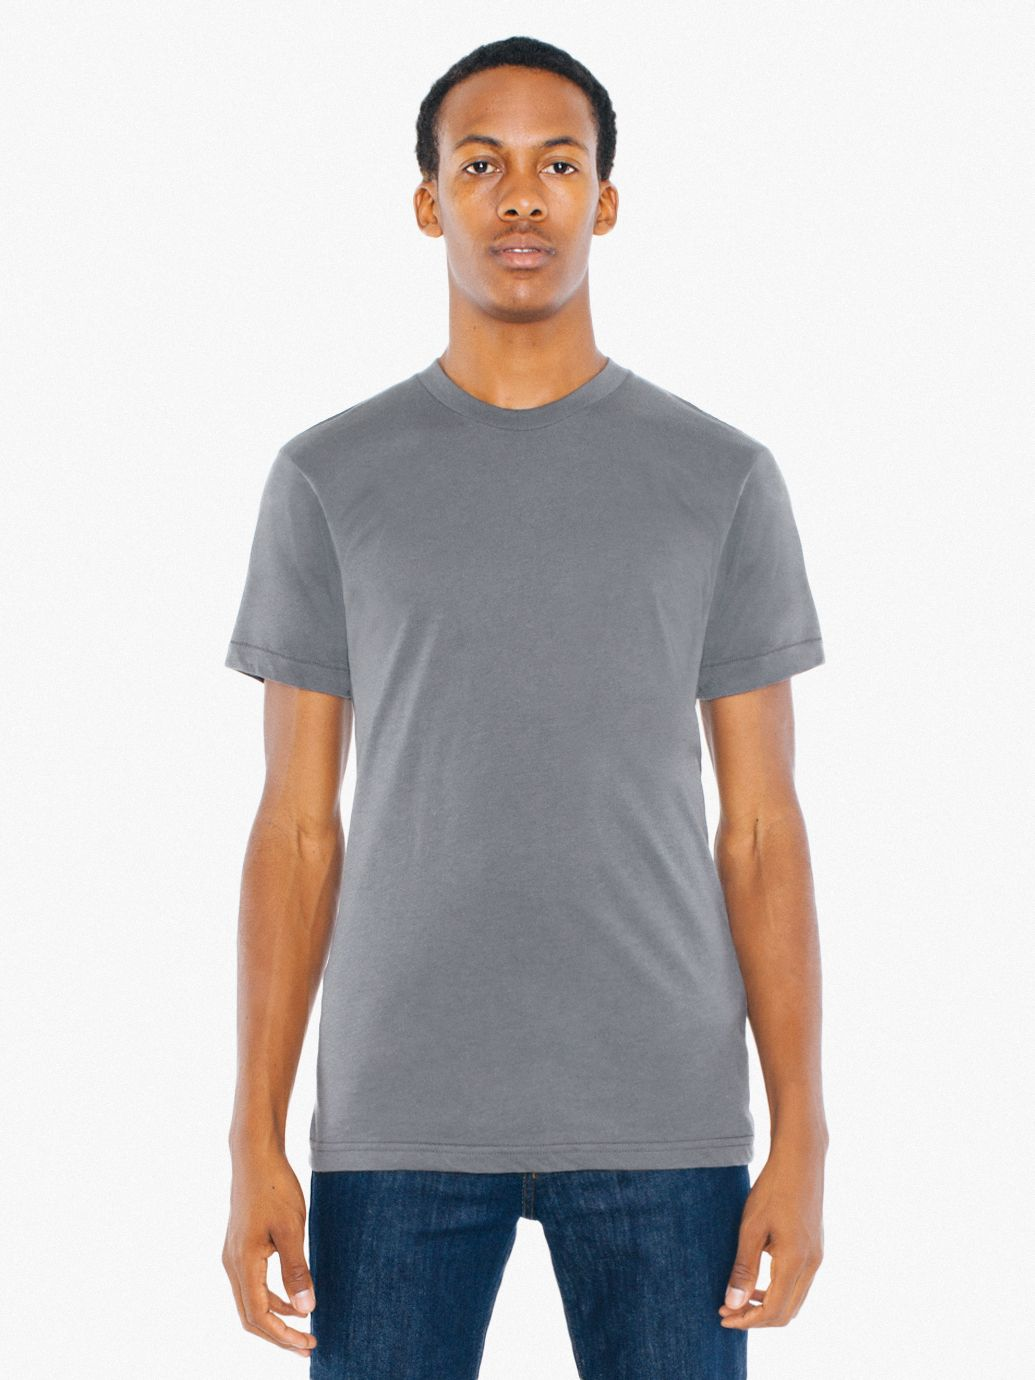 AMA T-shirt Crew Neck Pol/Cot For Him